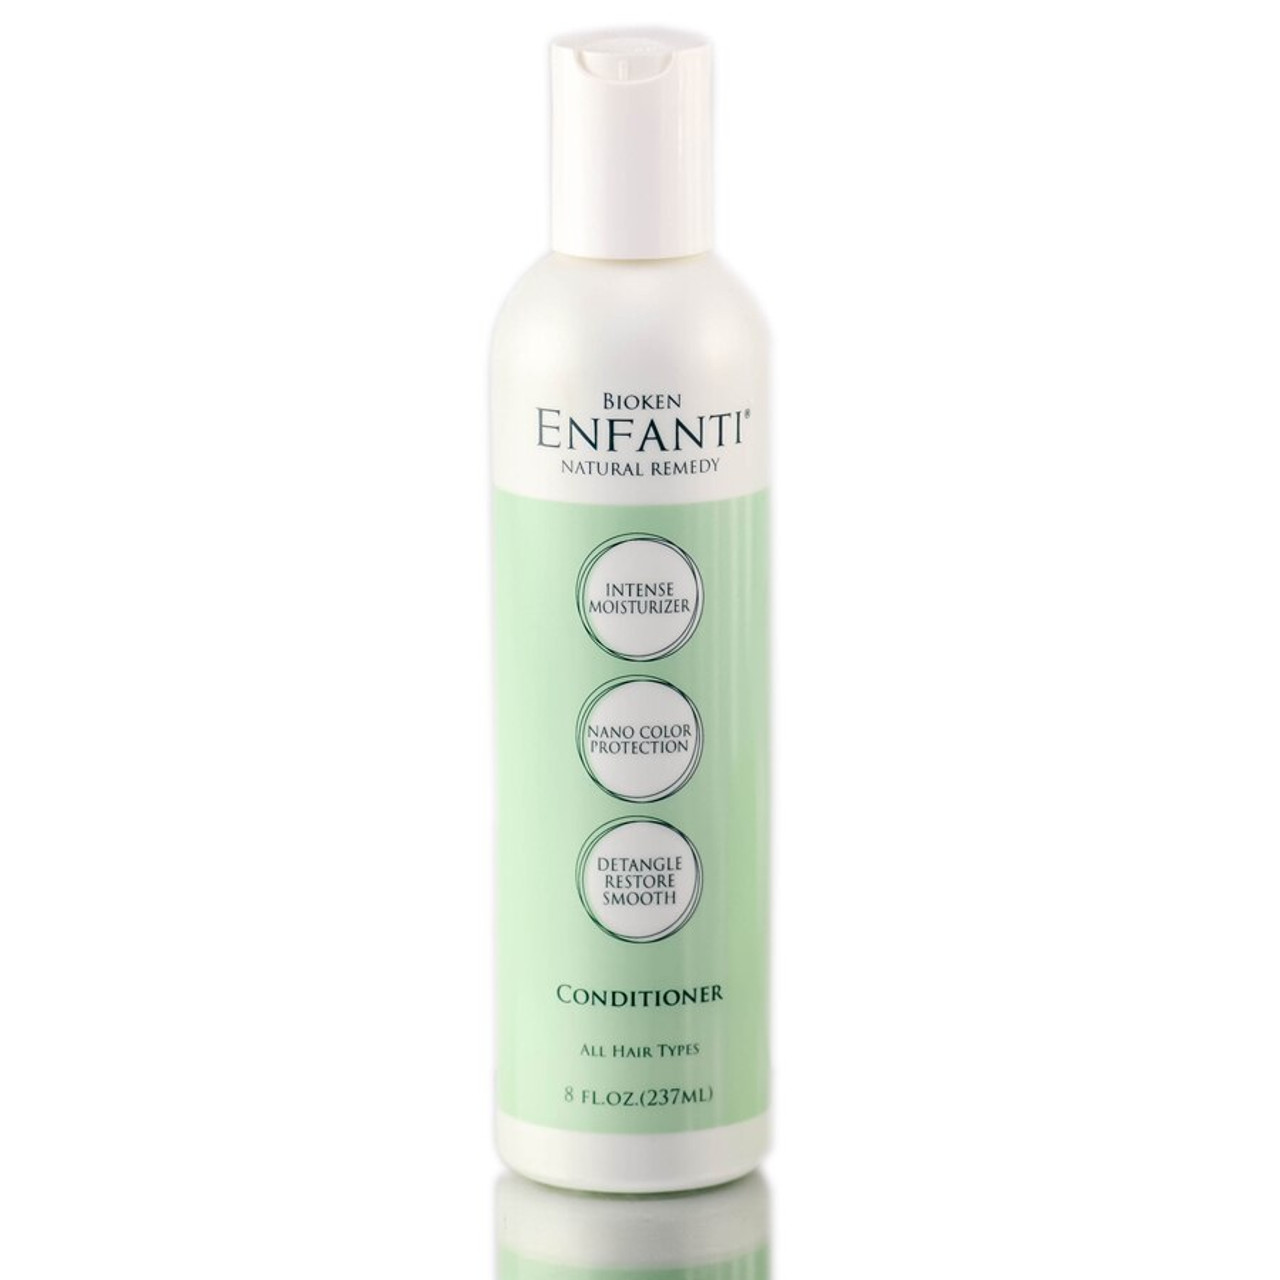 Bioken Enfanti Hydrating Conditioner 16 oz